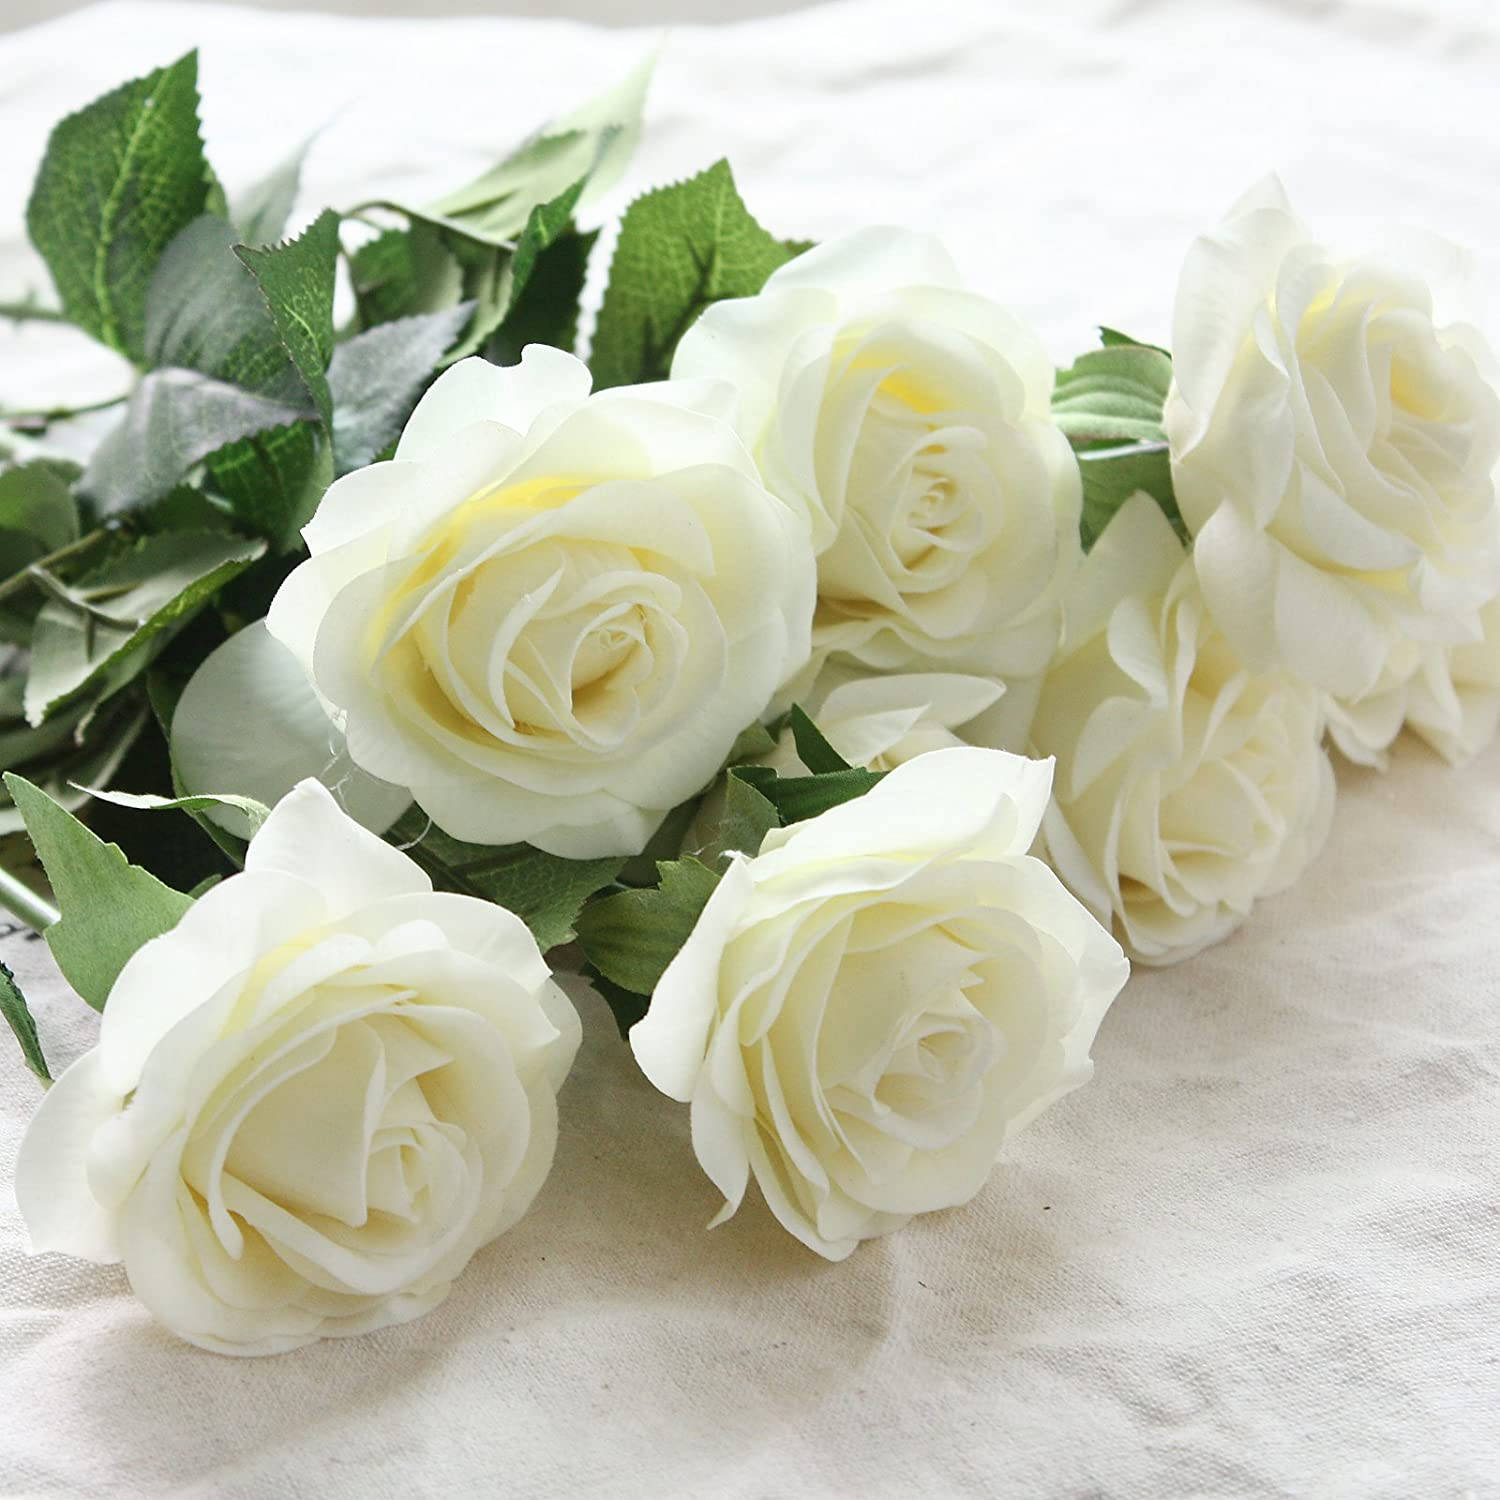 Amazon artificial silk flowers rose flowers with green leaves amazon artificial silk flowers rose flowers with green leaves real touch flower bouquet for homeoffice partywedding decoration and festival white izmirmasajfo Gallery